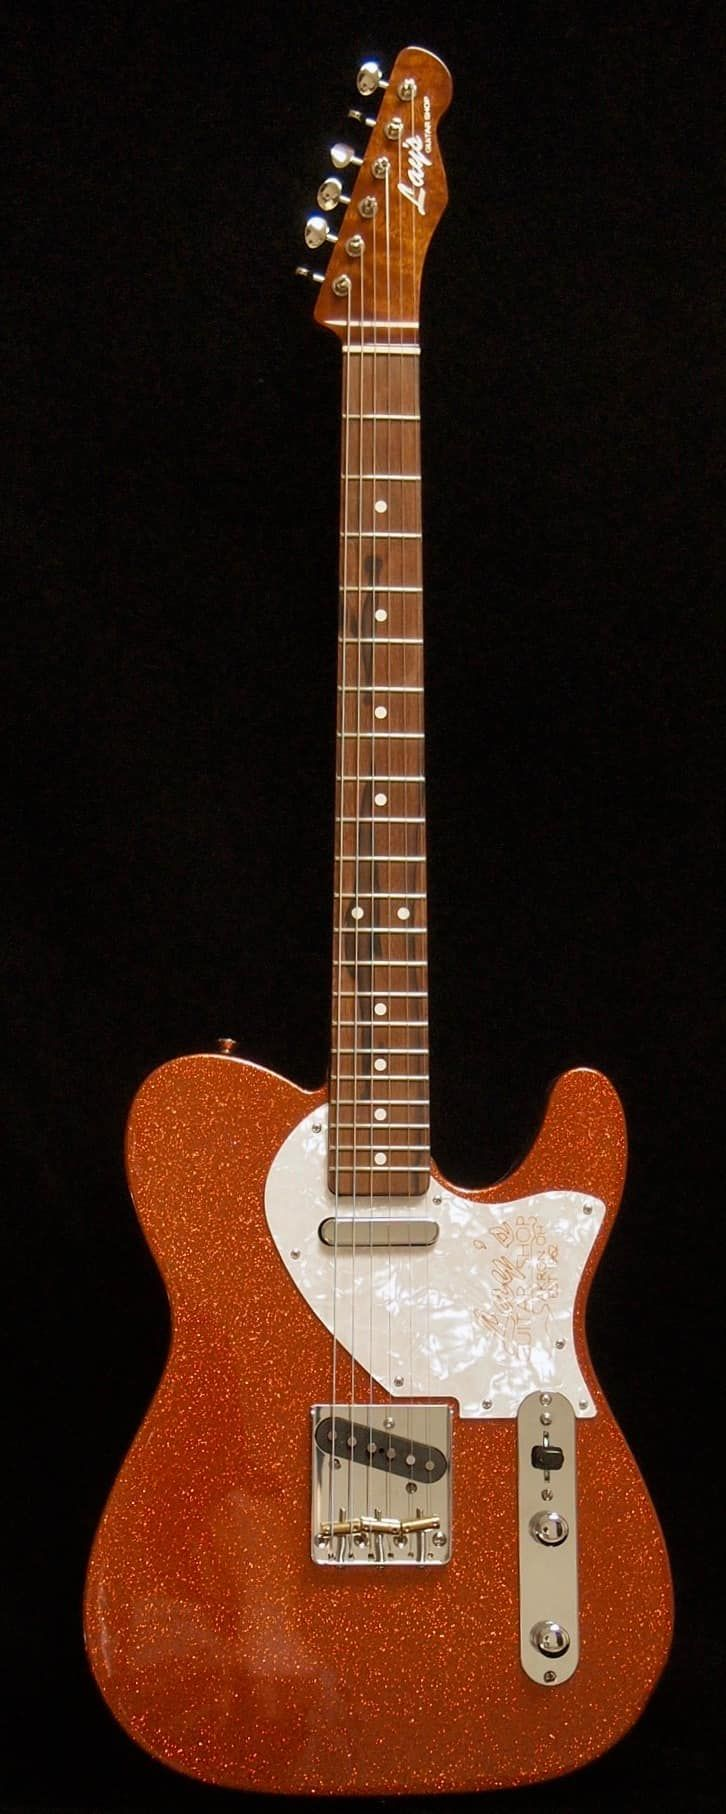 """Here is a totally custom-made, one-of-a-kind Lay's Guitar Shop Burnt Orange Sparklecaster. It has some really great features including the following:Alder BodyFlamed Sapele NeckBrazilian Rosewood Fret Board12"""" RadiusBone 1 11/16"""" NutVintage Neck Construction (single action truss rod)6105 Fret..."""